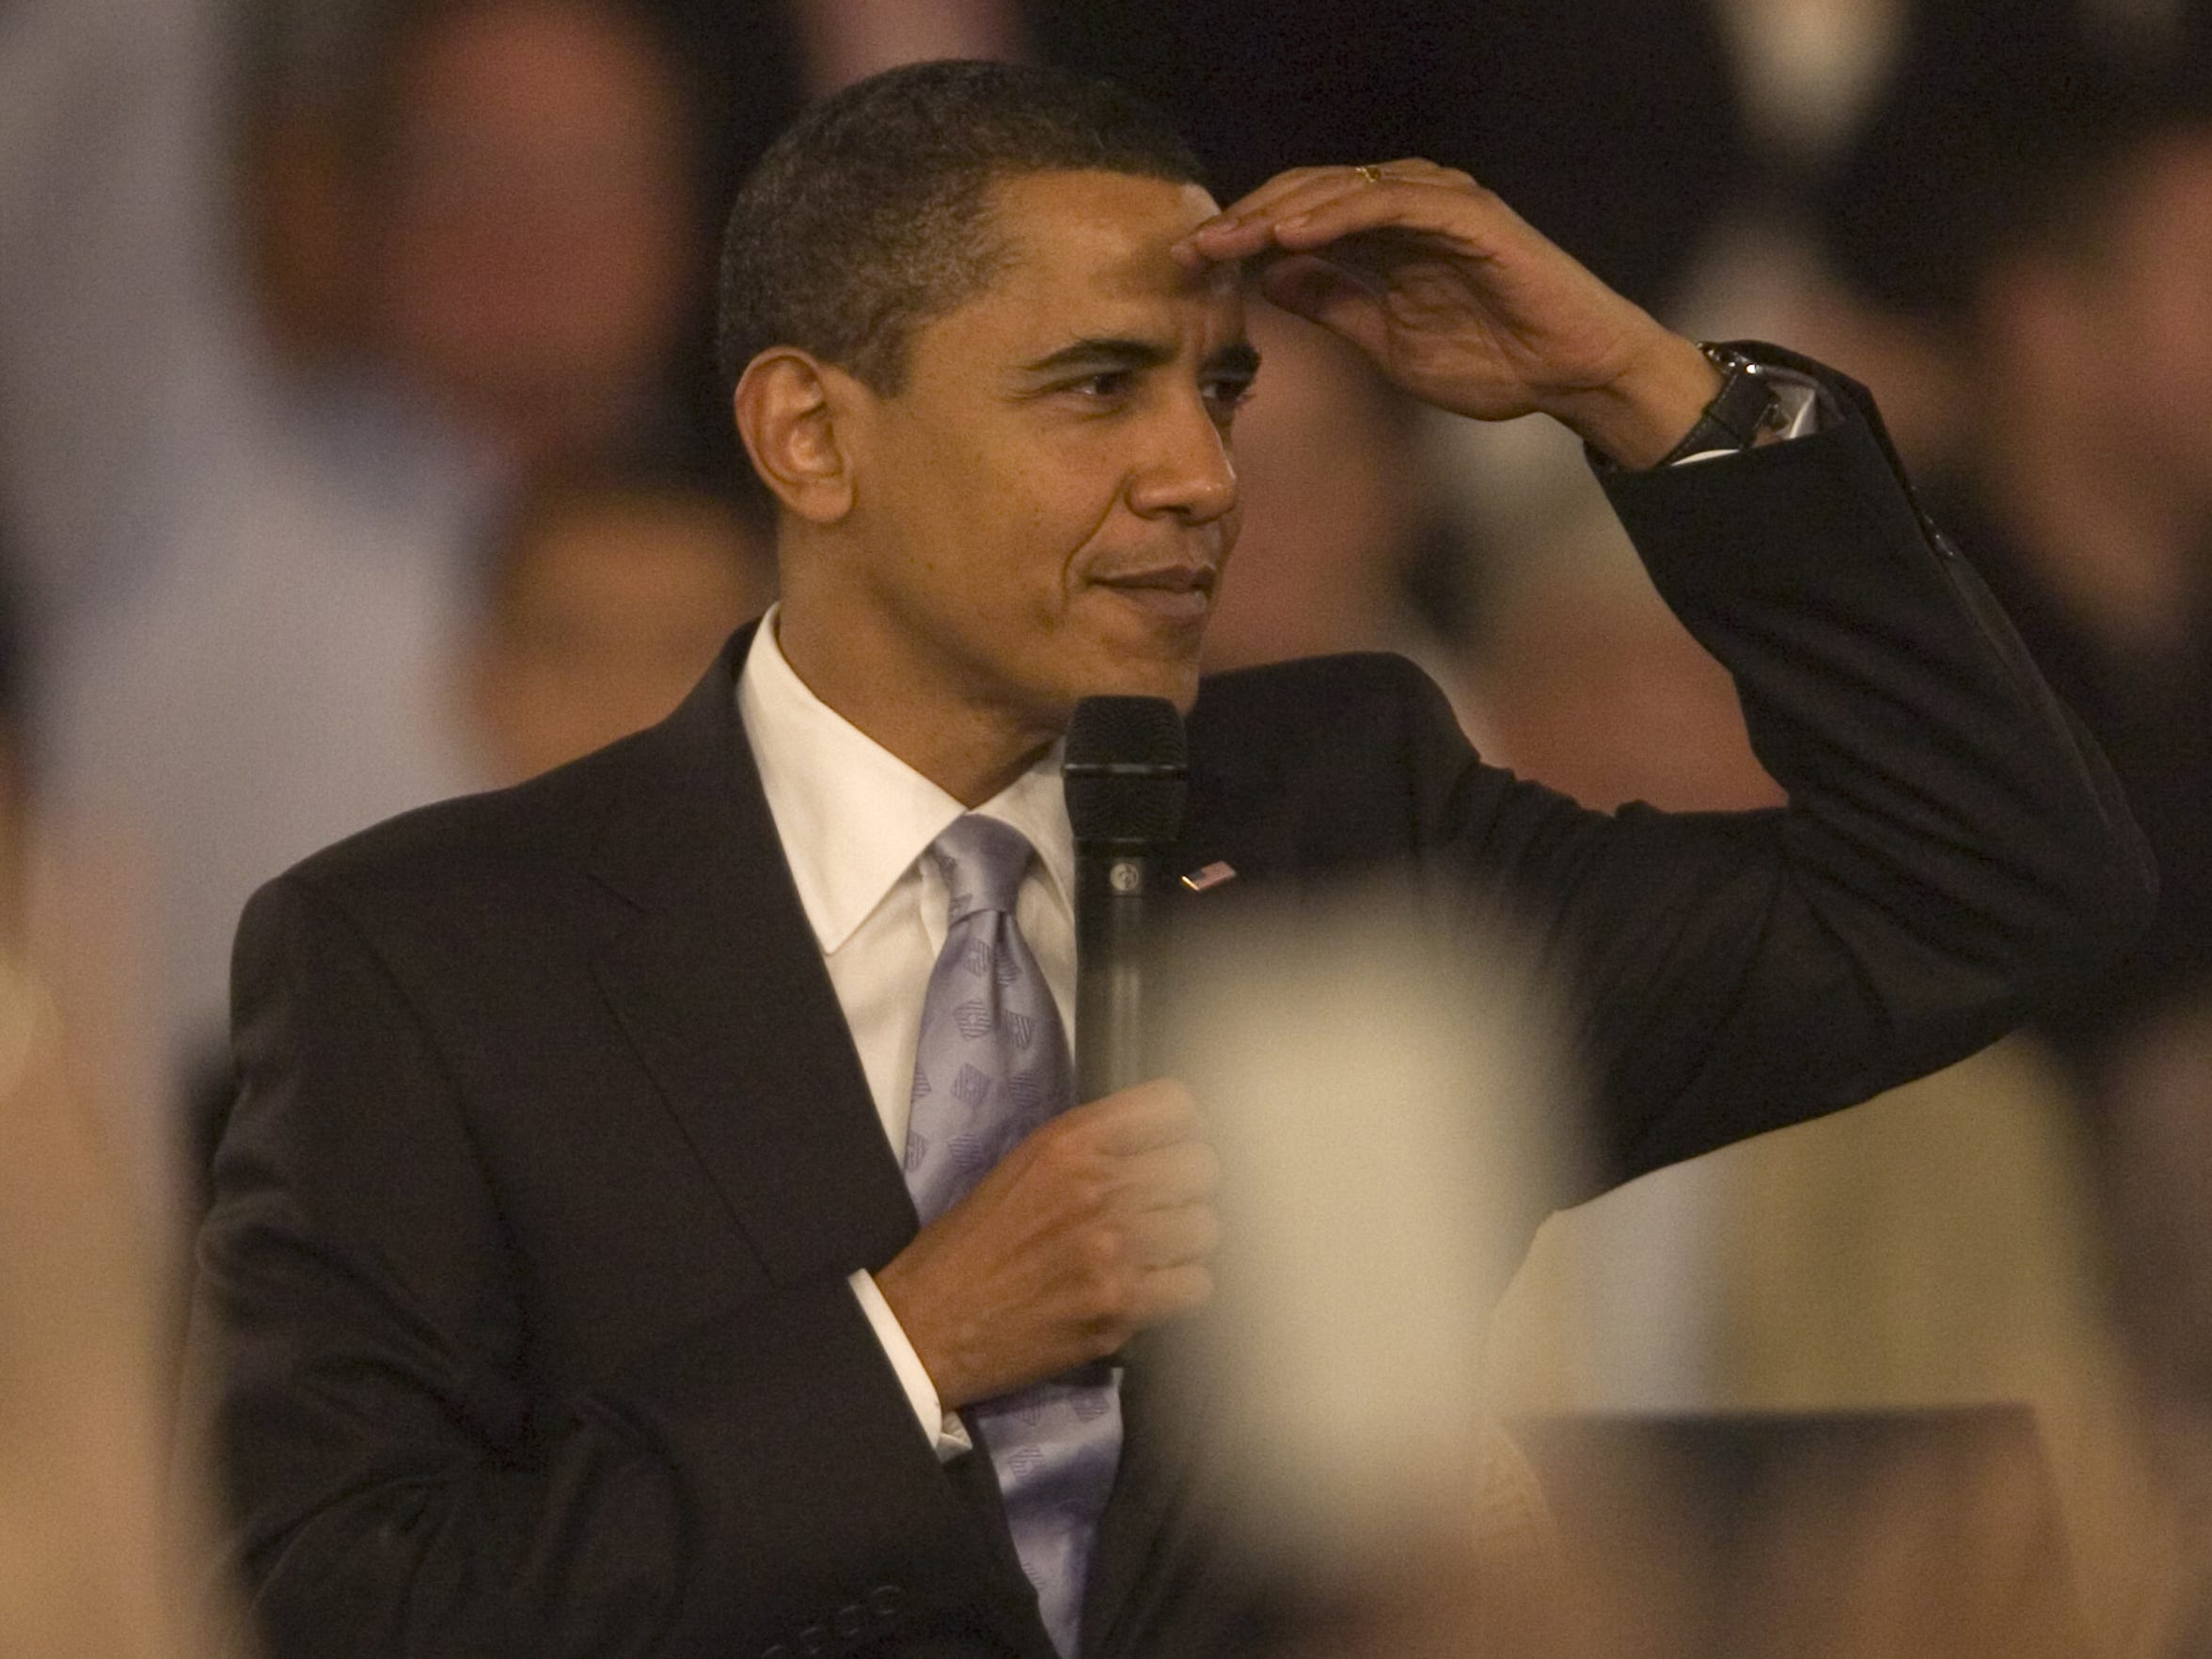 President Obama at Harborside Event Center during his Fort Myers visit on Feb. 10, 2009.